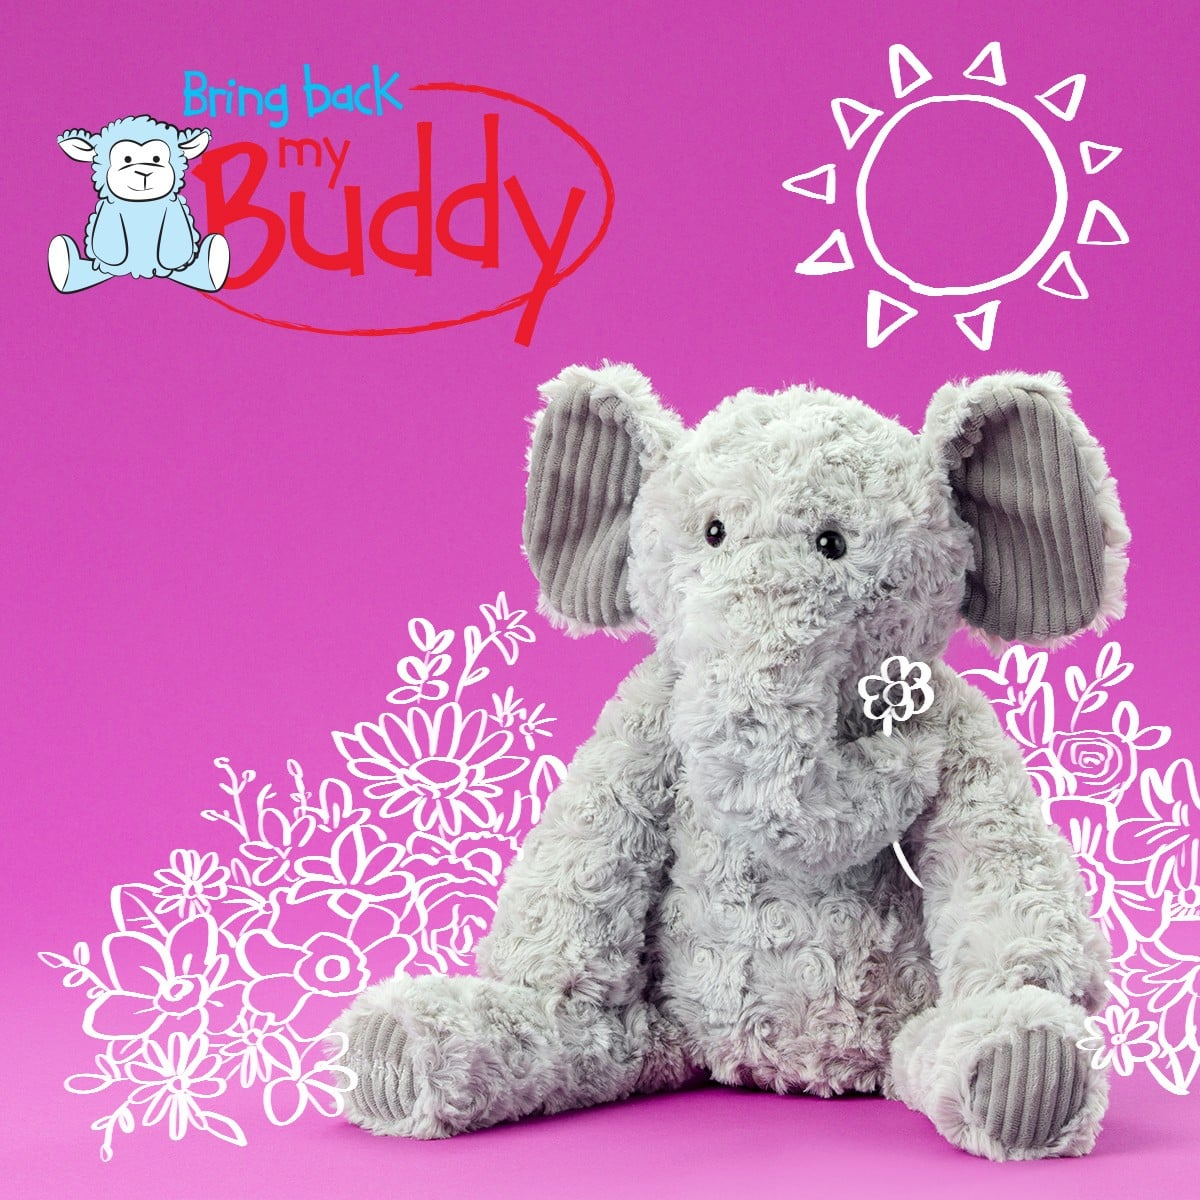 ELIZA THE ELEPHANT BRING BACK MY SCENTSY BUDDY